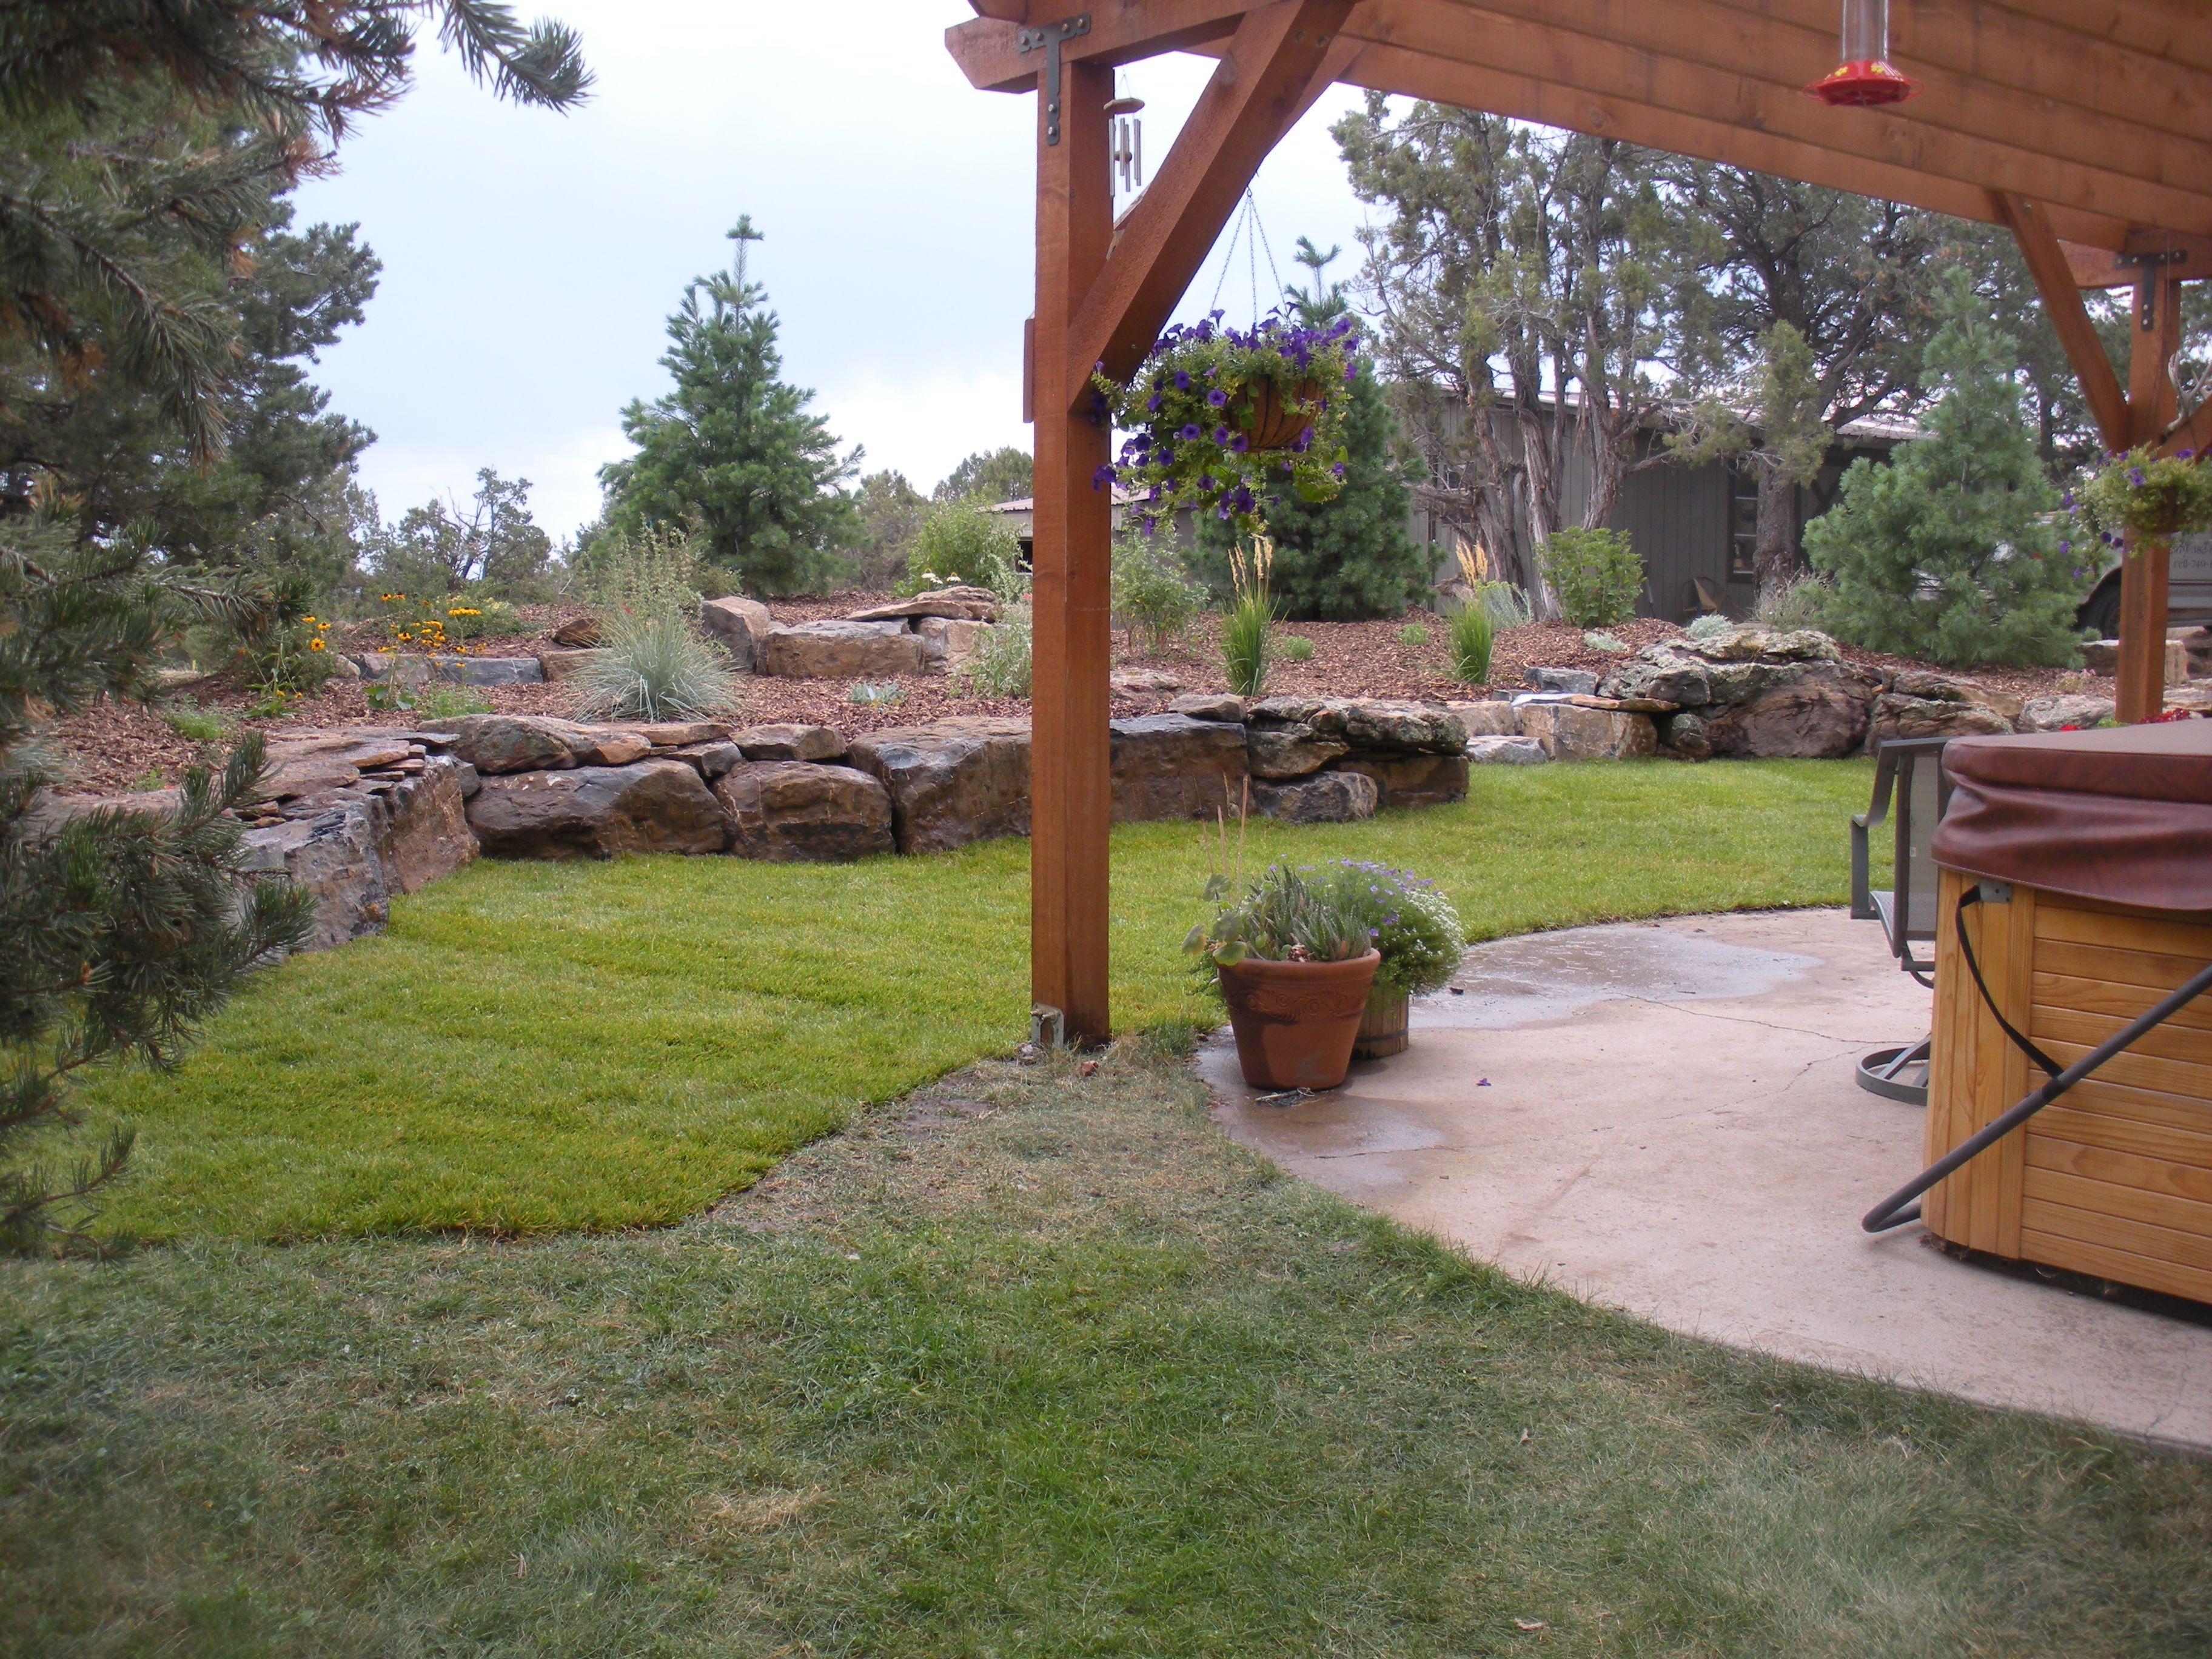 landscape design jobs colorado - Garden Ideas Colorado